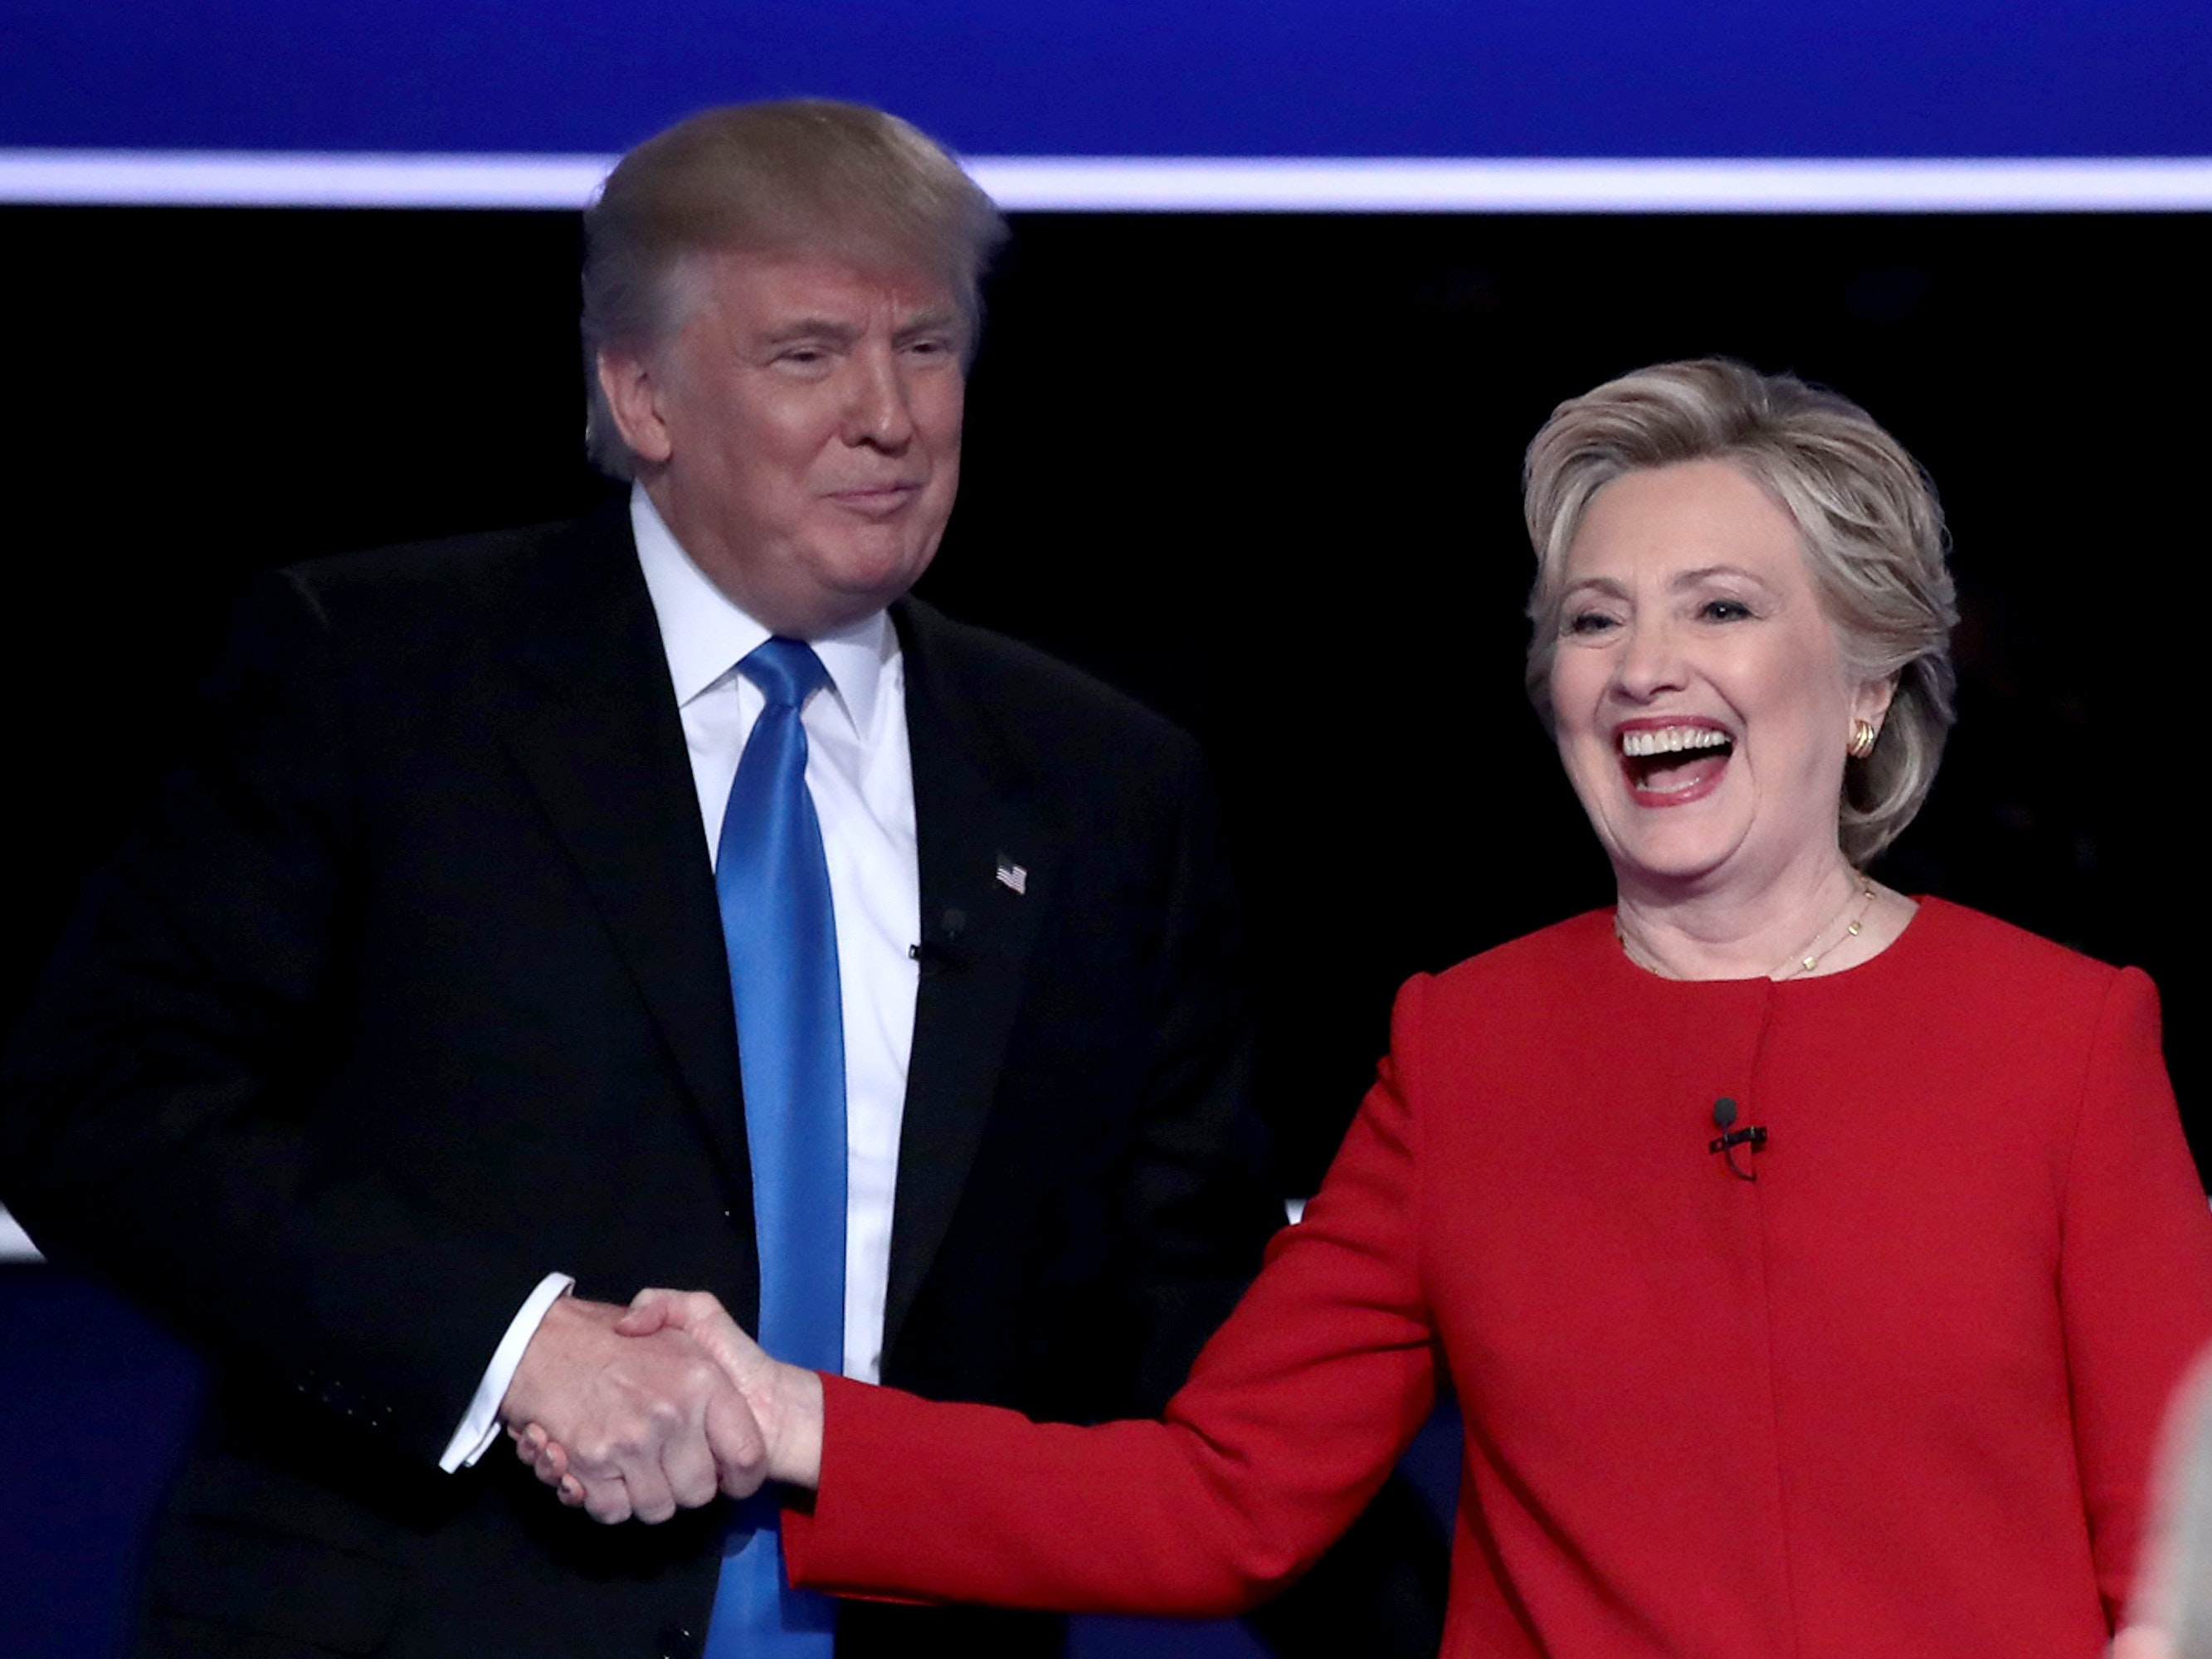 HEMPSTEAD, NY - SEPTEMBER 26:  (L-R) Republican presidential nominee Donald Trump and Democratic presidential nominee Hillary Clinton shake hands after the Presidential Debate at Hofstra University on September 26, 2016 in Hempstead, New York.  The first of four debates for the 2016 Election, three Presidential and one Vice Presidential, is moderated by NBC's Lester Holt.  (Photo by Drew Angerer/Getty Images)